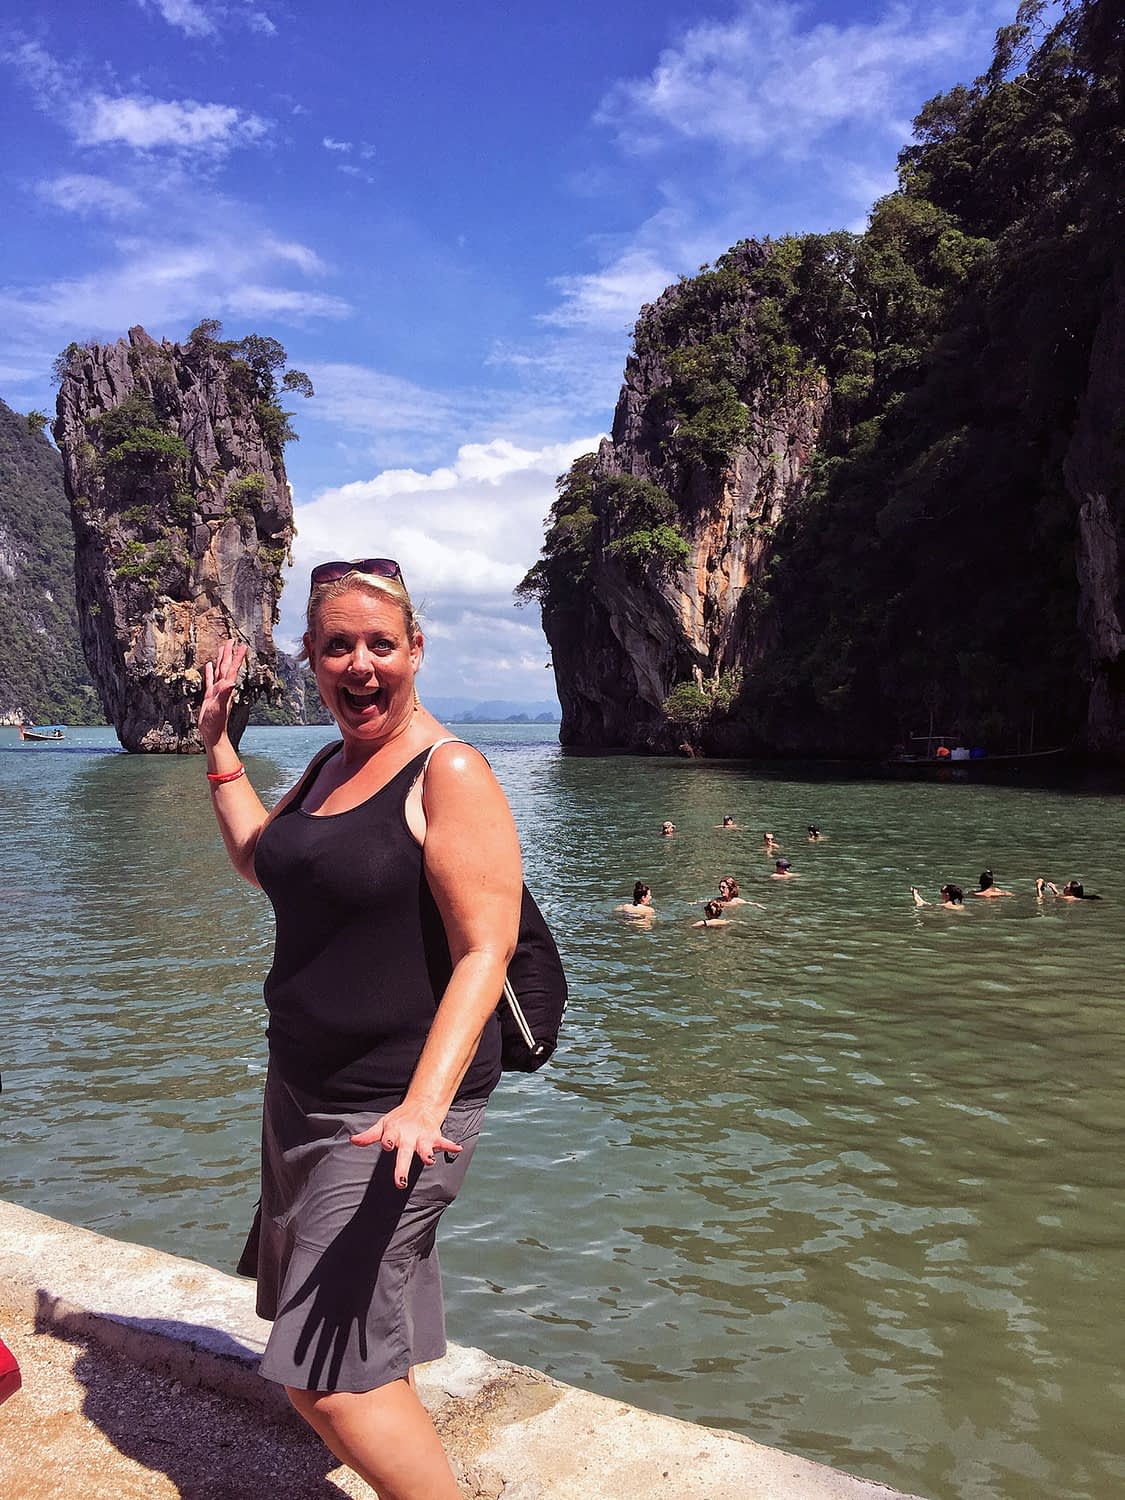 Me standing by green water in Thailand